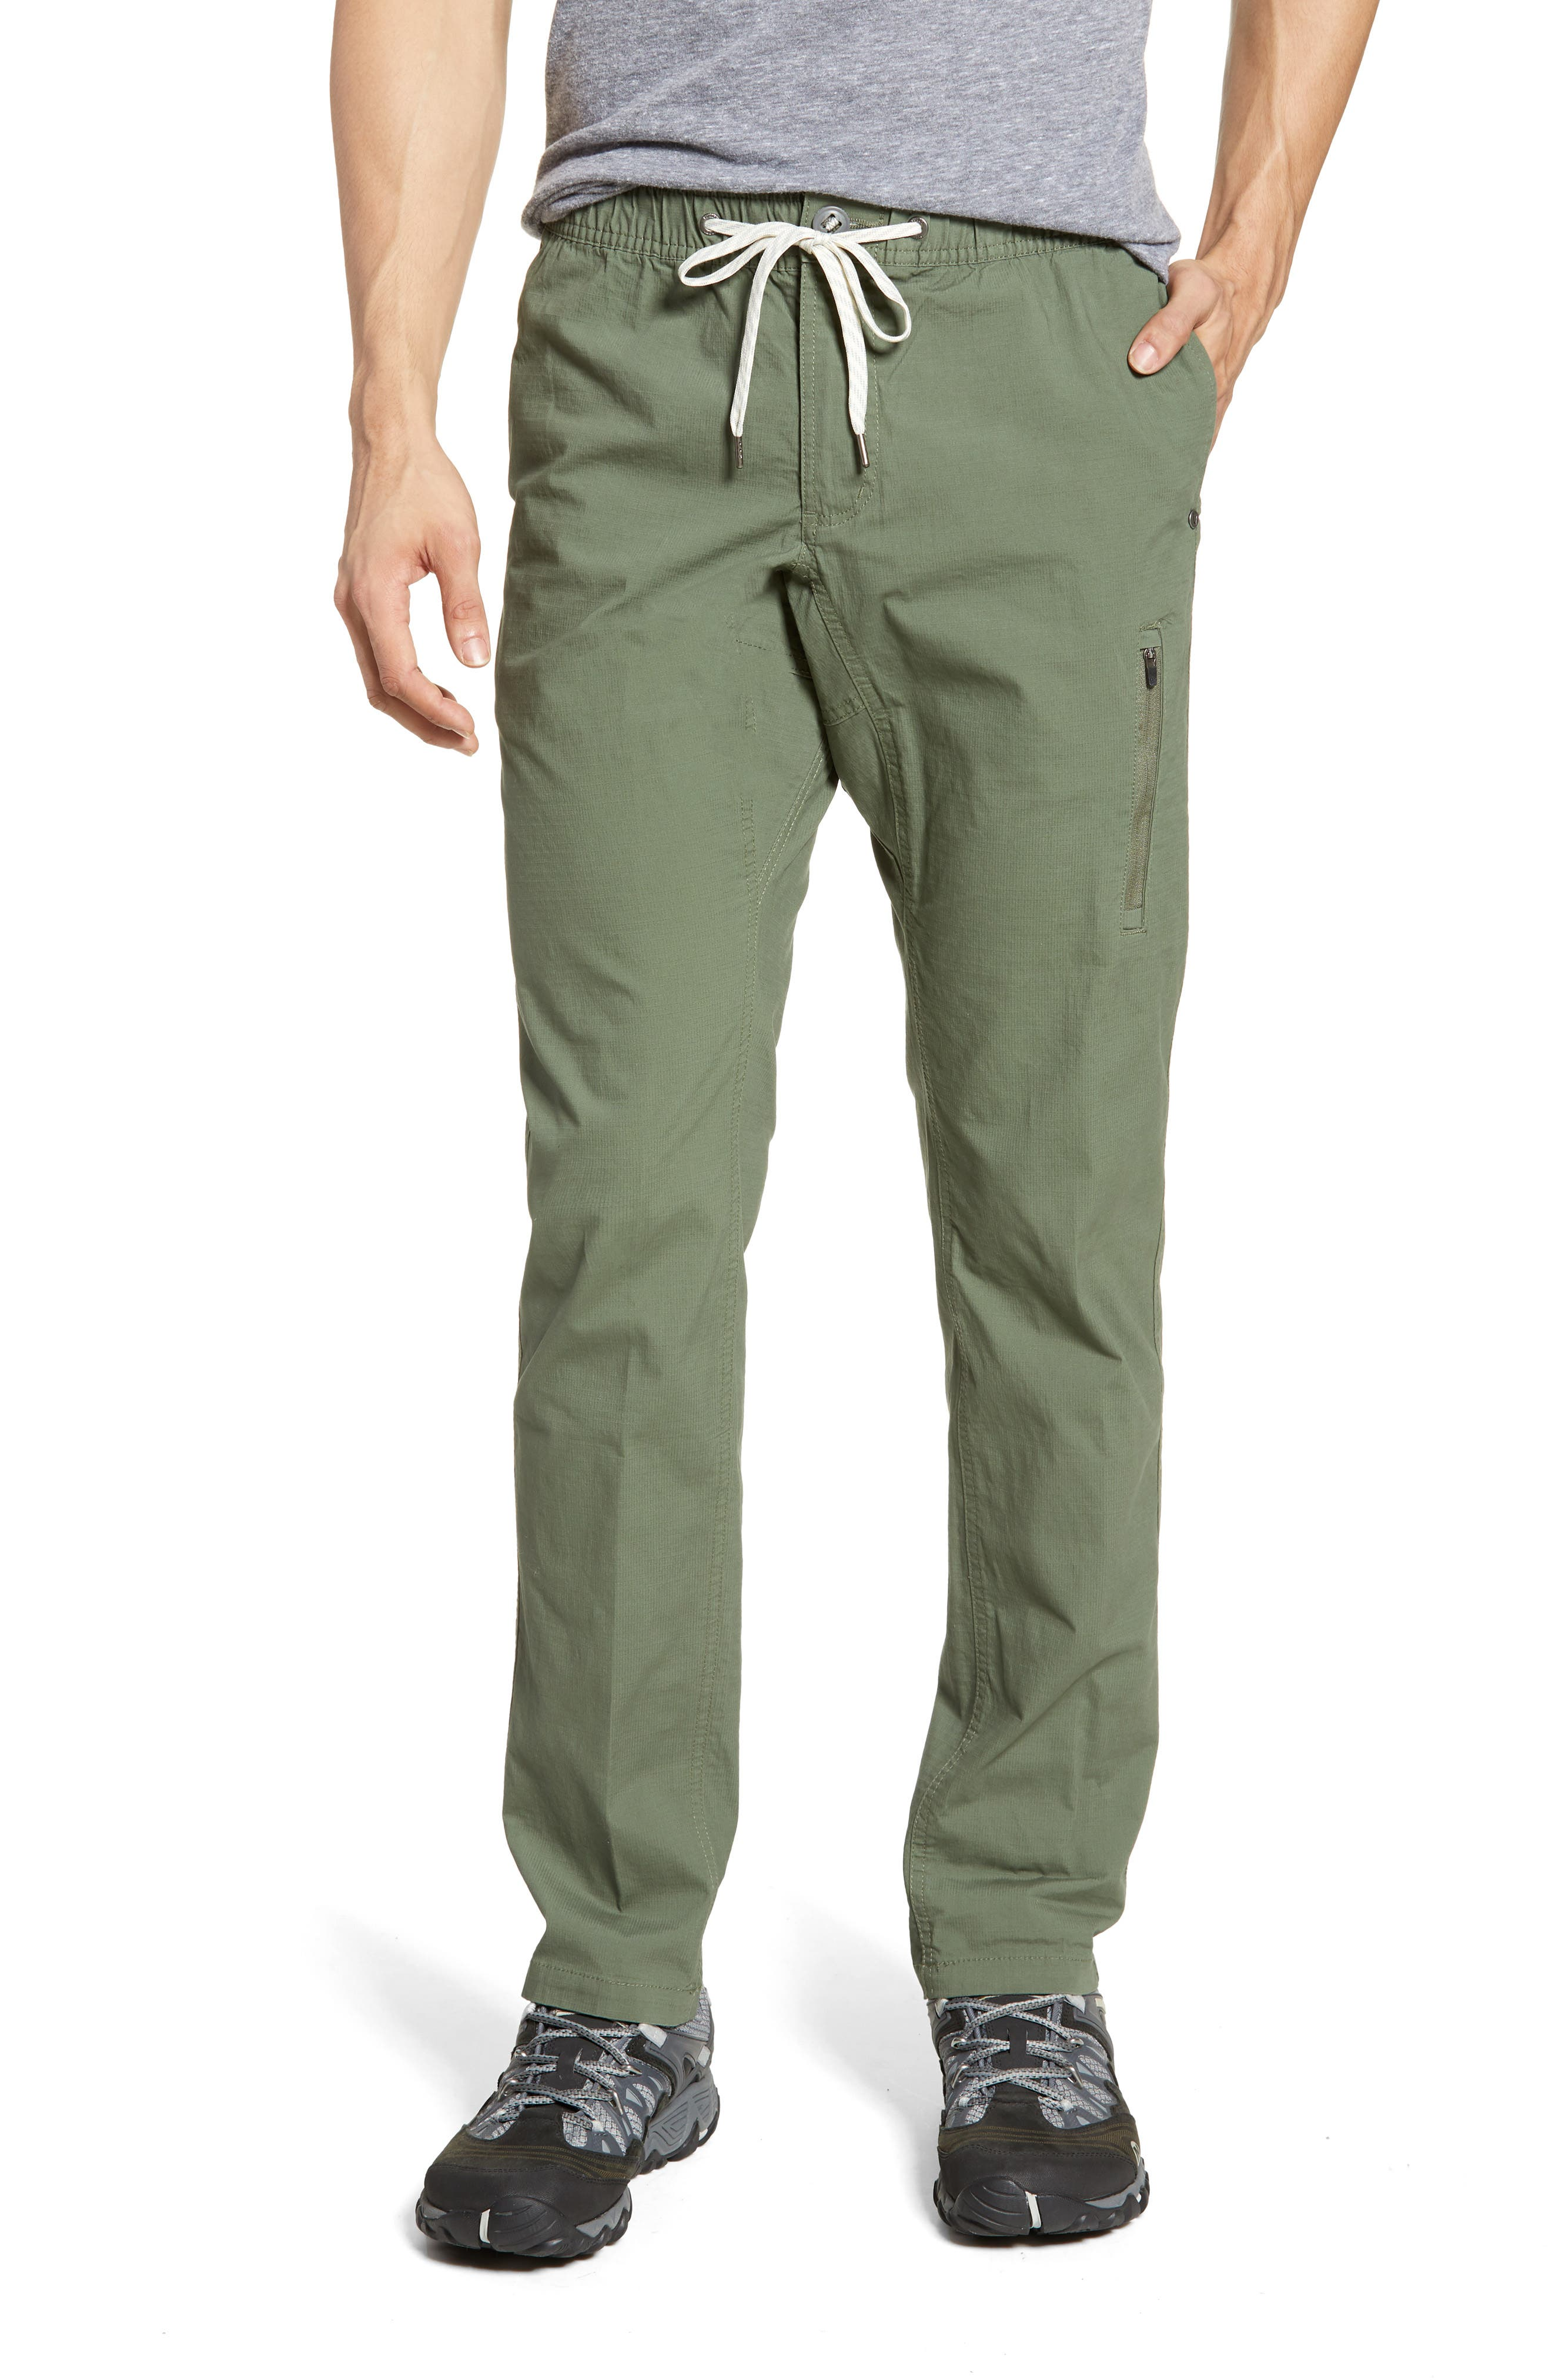 Brixton Reflective Trousers Work Pants Safety Pants Protective Trousers Yellow